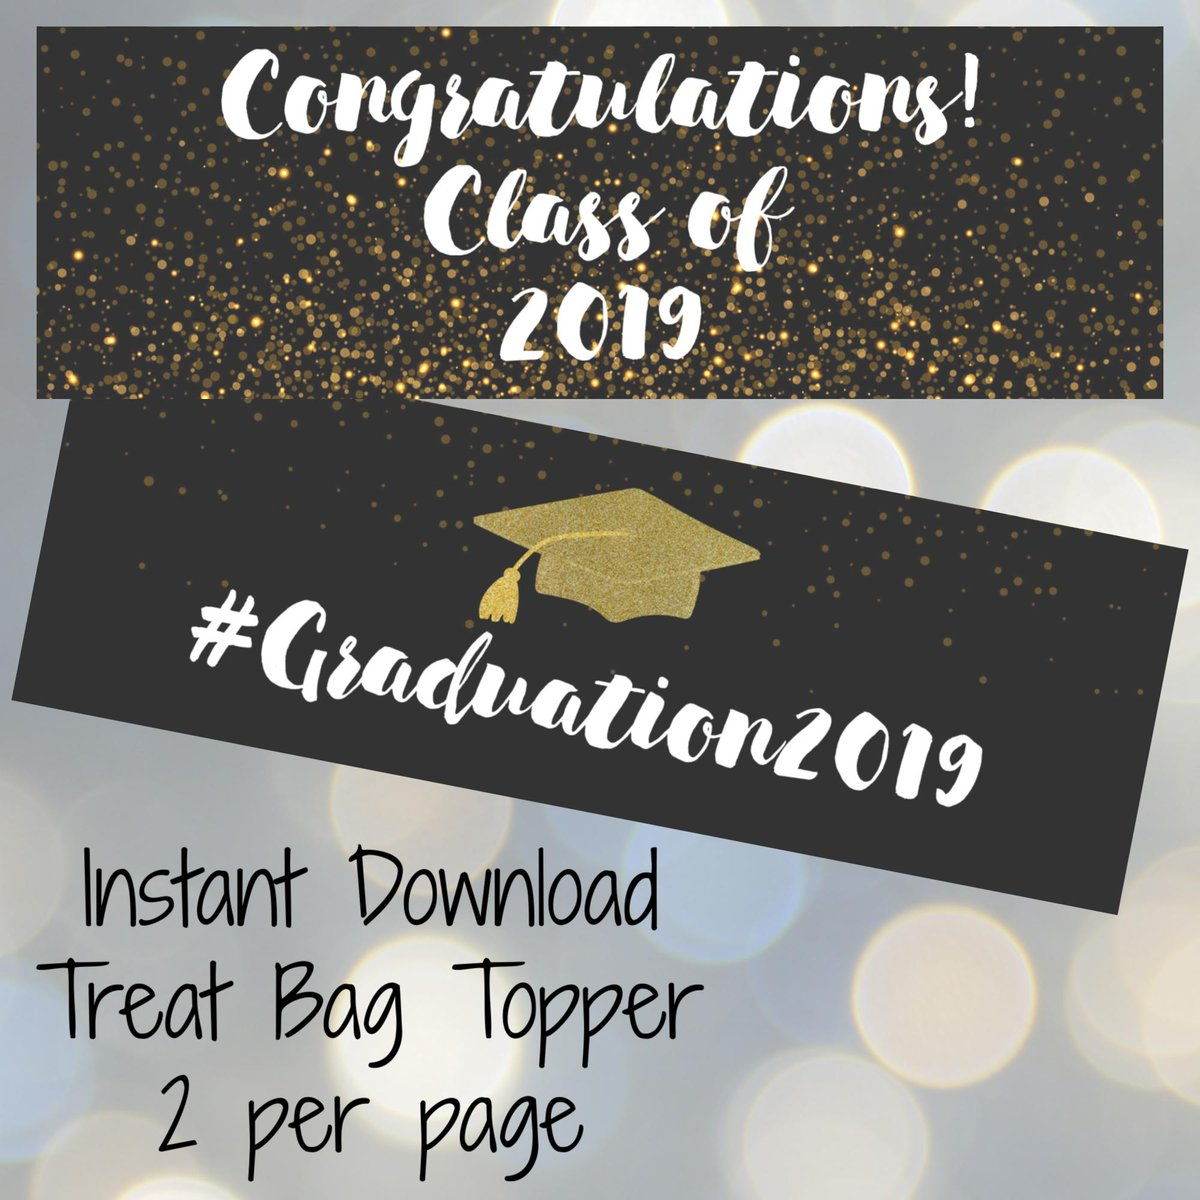 Planning a #Graduation party? Checkout DIY treat bag toppers! https://t.co/mASFm6c61U #Graduation2019 #partyfavors #partyplanning #moms #kids #family #parenting #children #momsofgirls #etsy #birthday #dads #collegegrad #graduationparty #partyideas https://t.co/3SOXKkG5HR